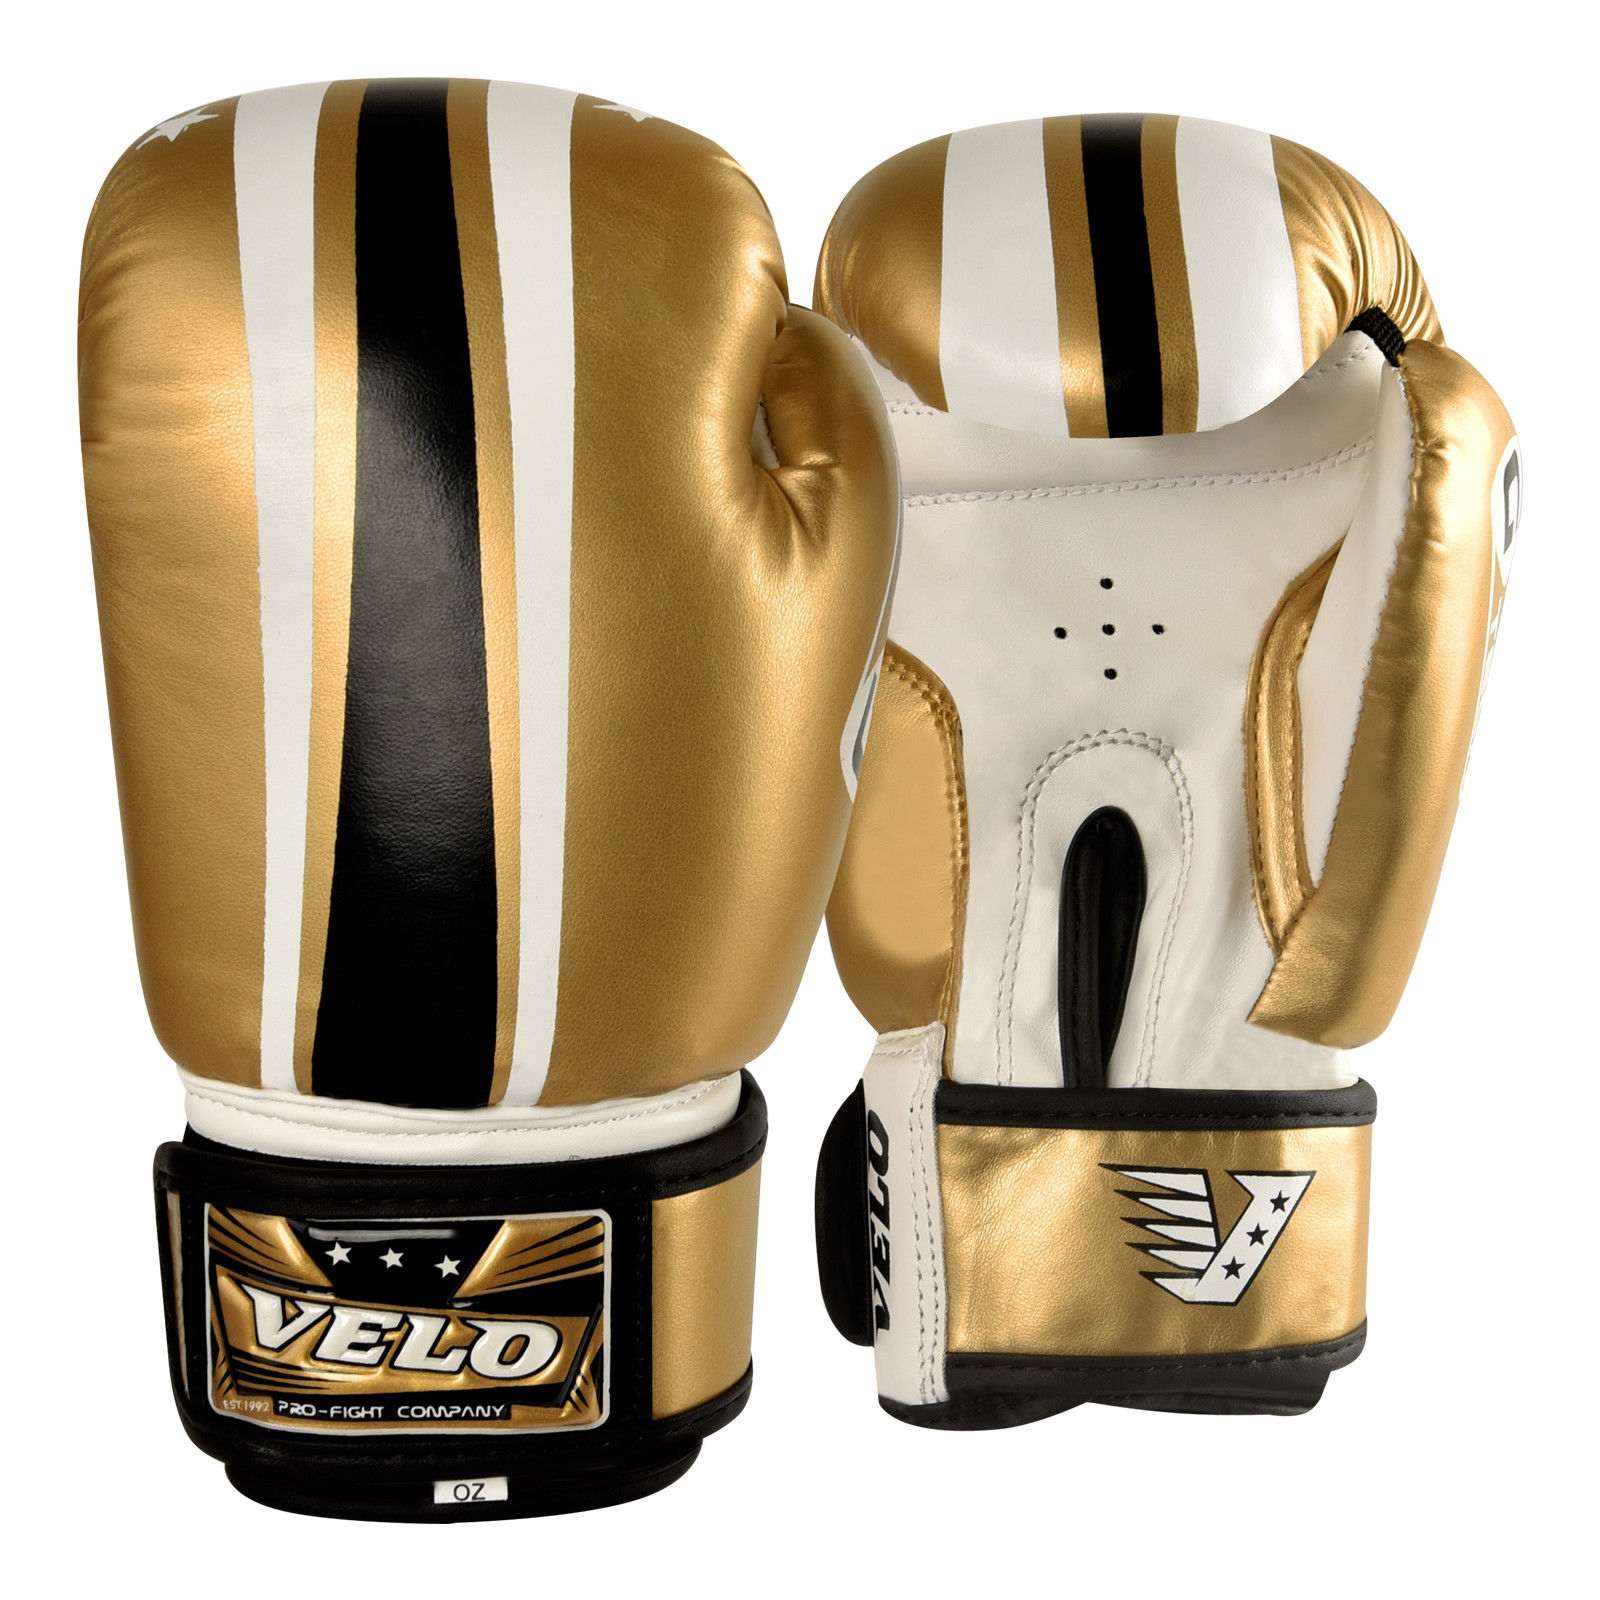 VELO Boxing Gloves - Gold-White-Black